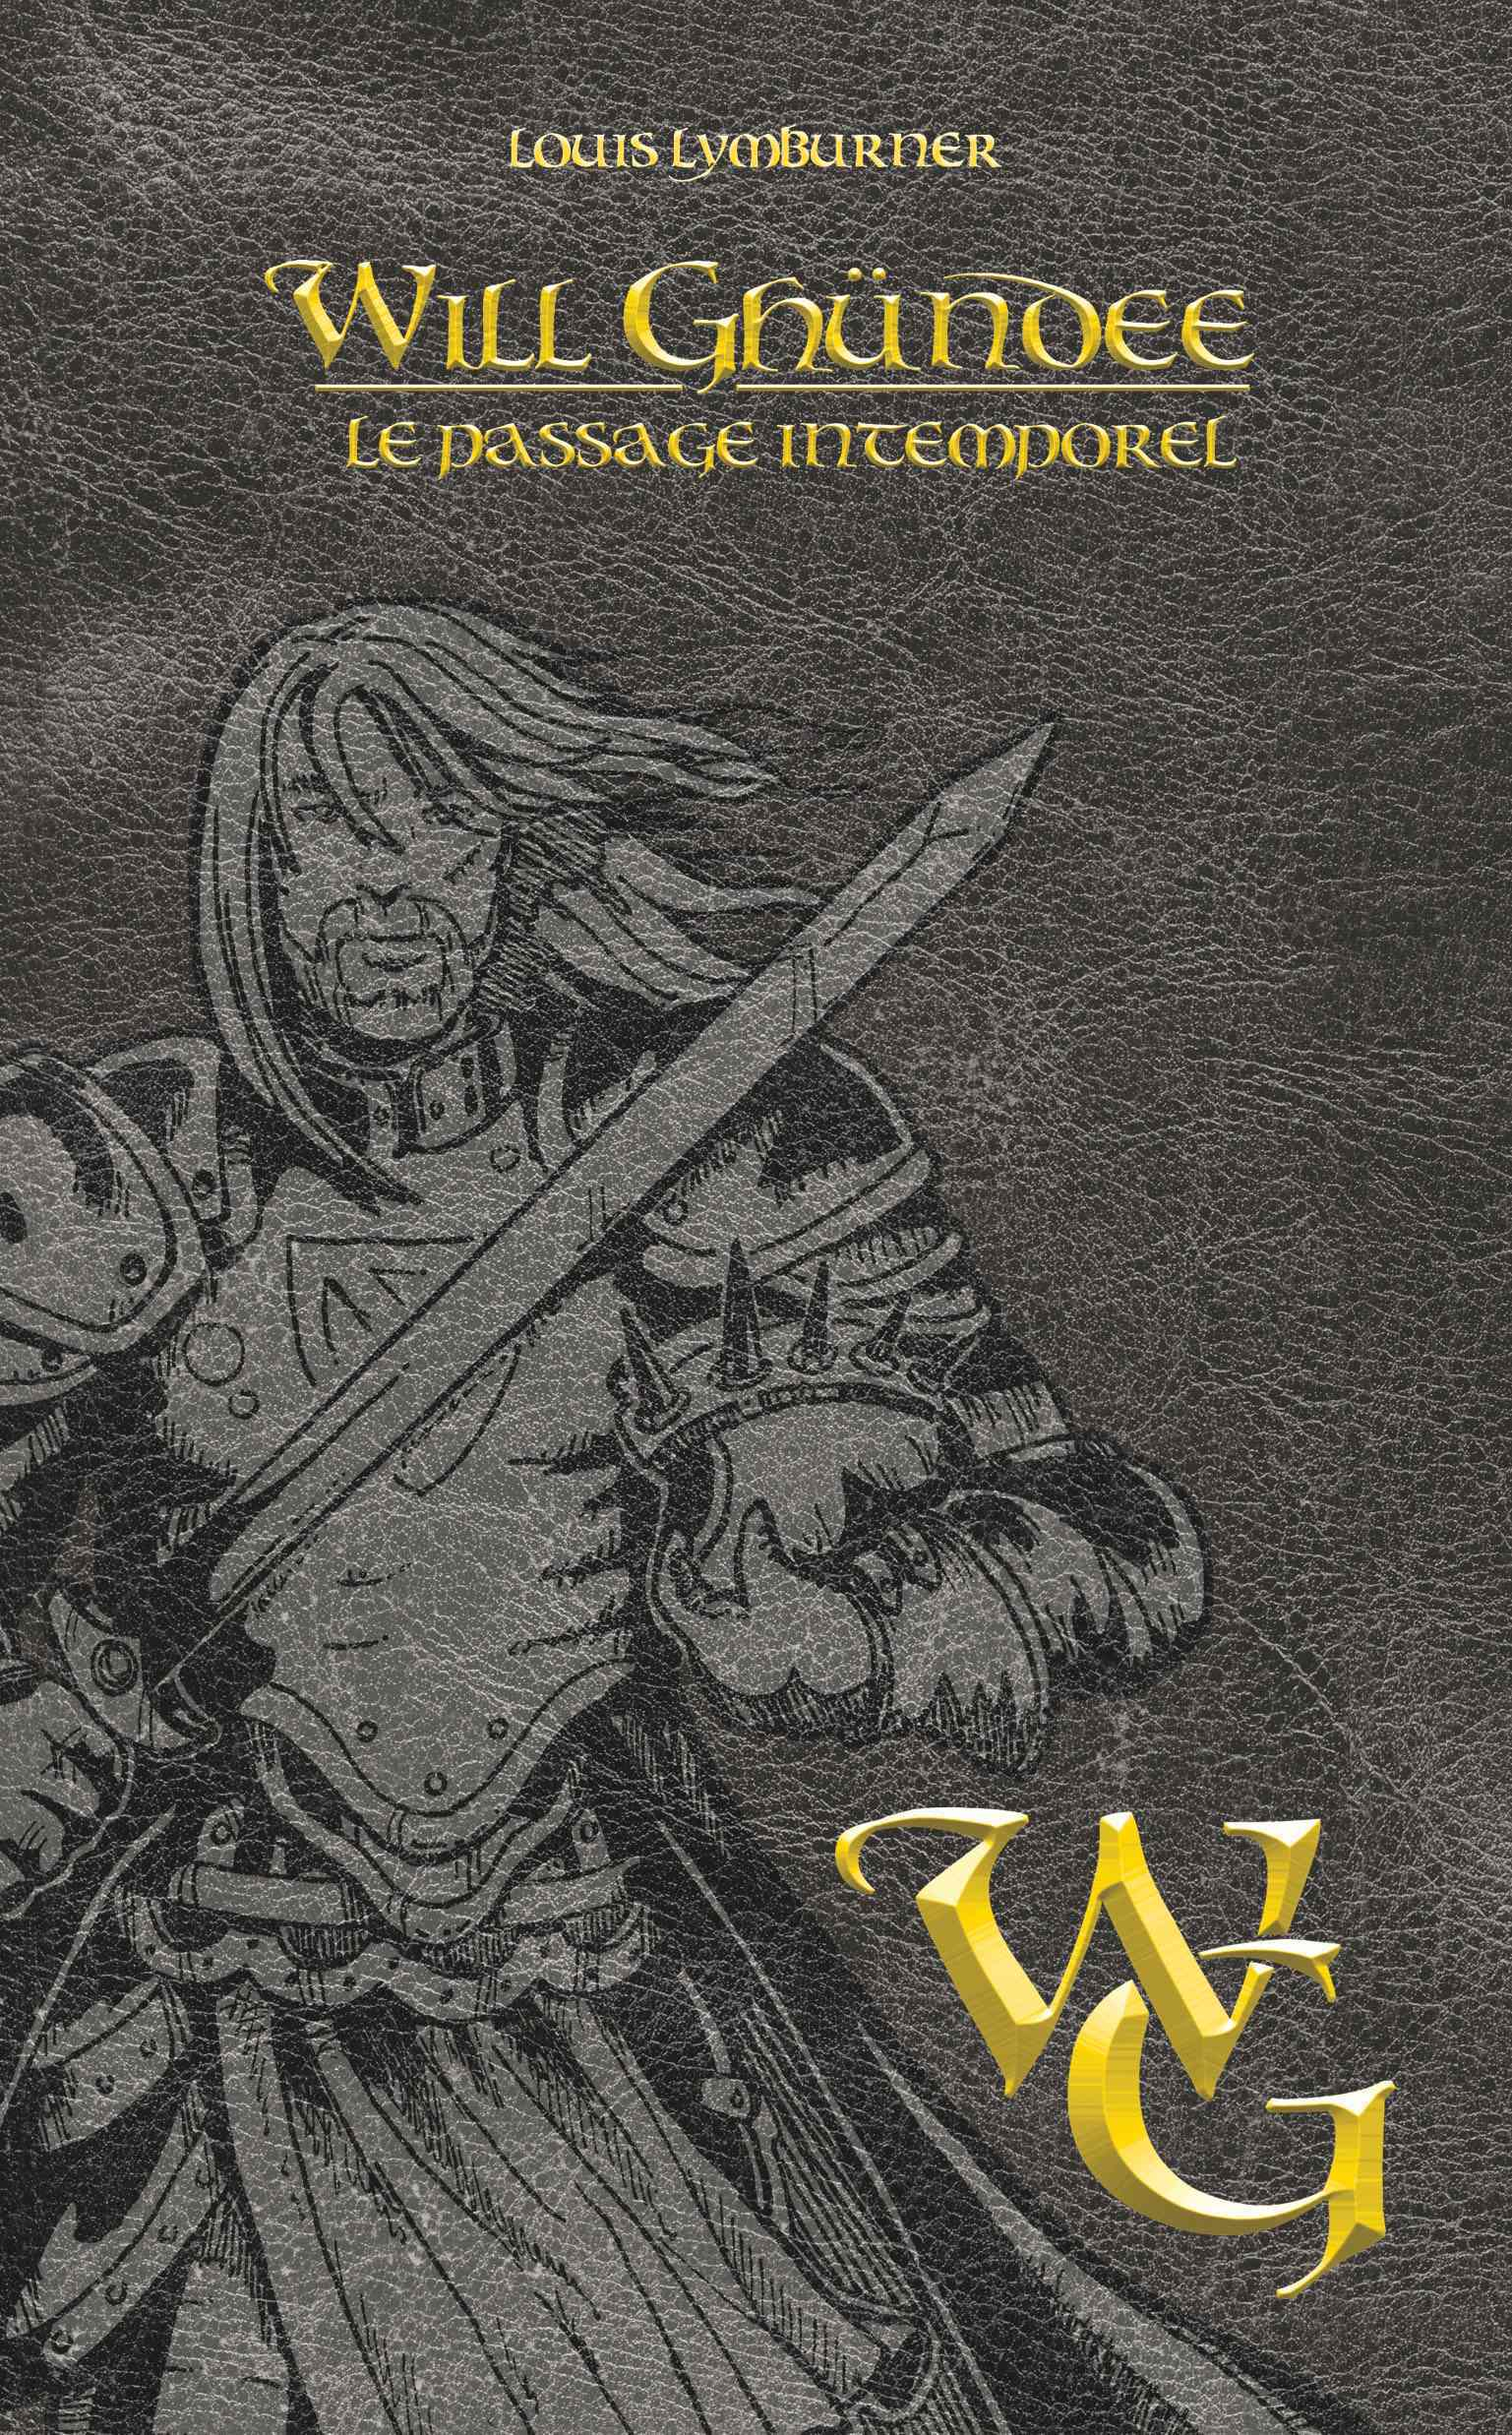 WILL GHUNDEE - TOME 2 LE PASSAGE INTEMPOREL